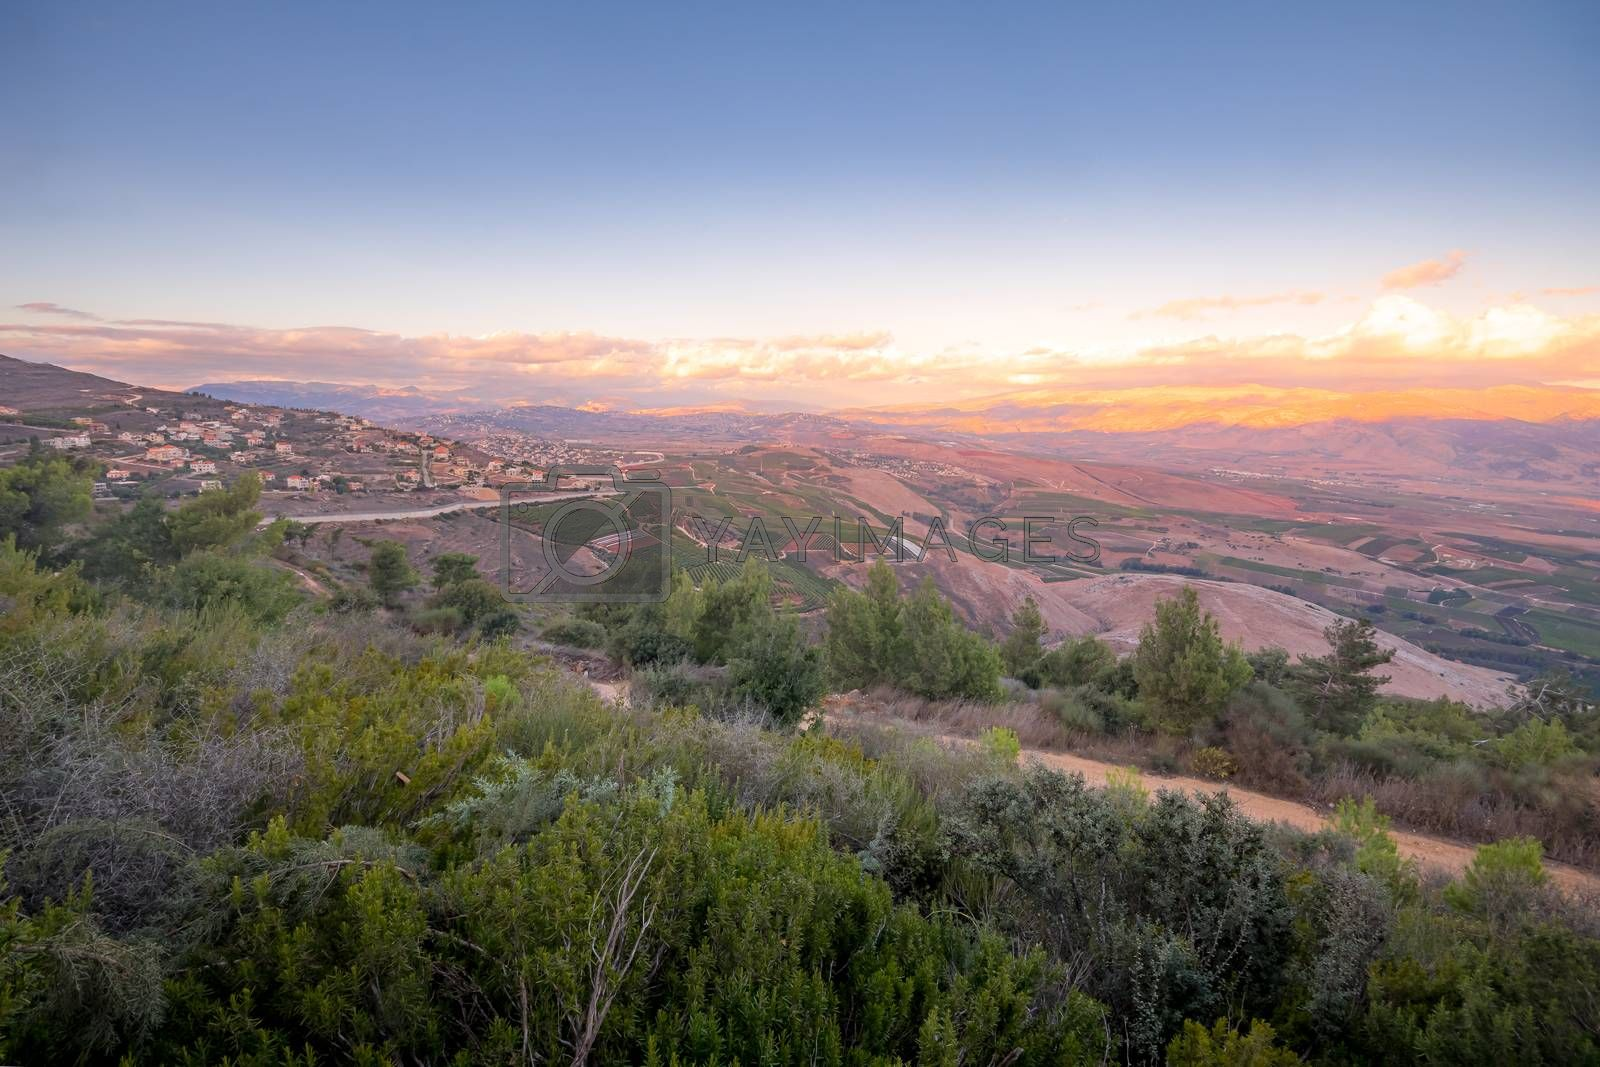 Sunset view of landscape at the border between northern Israel and Lebanon